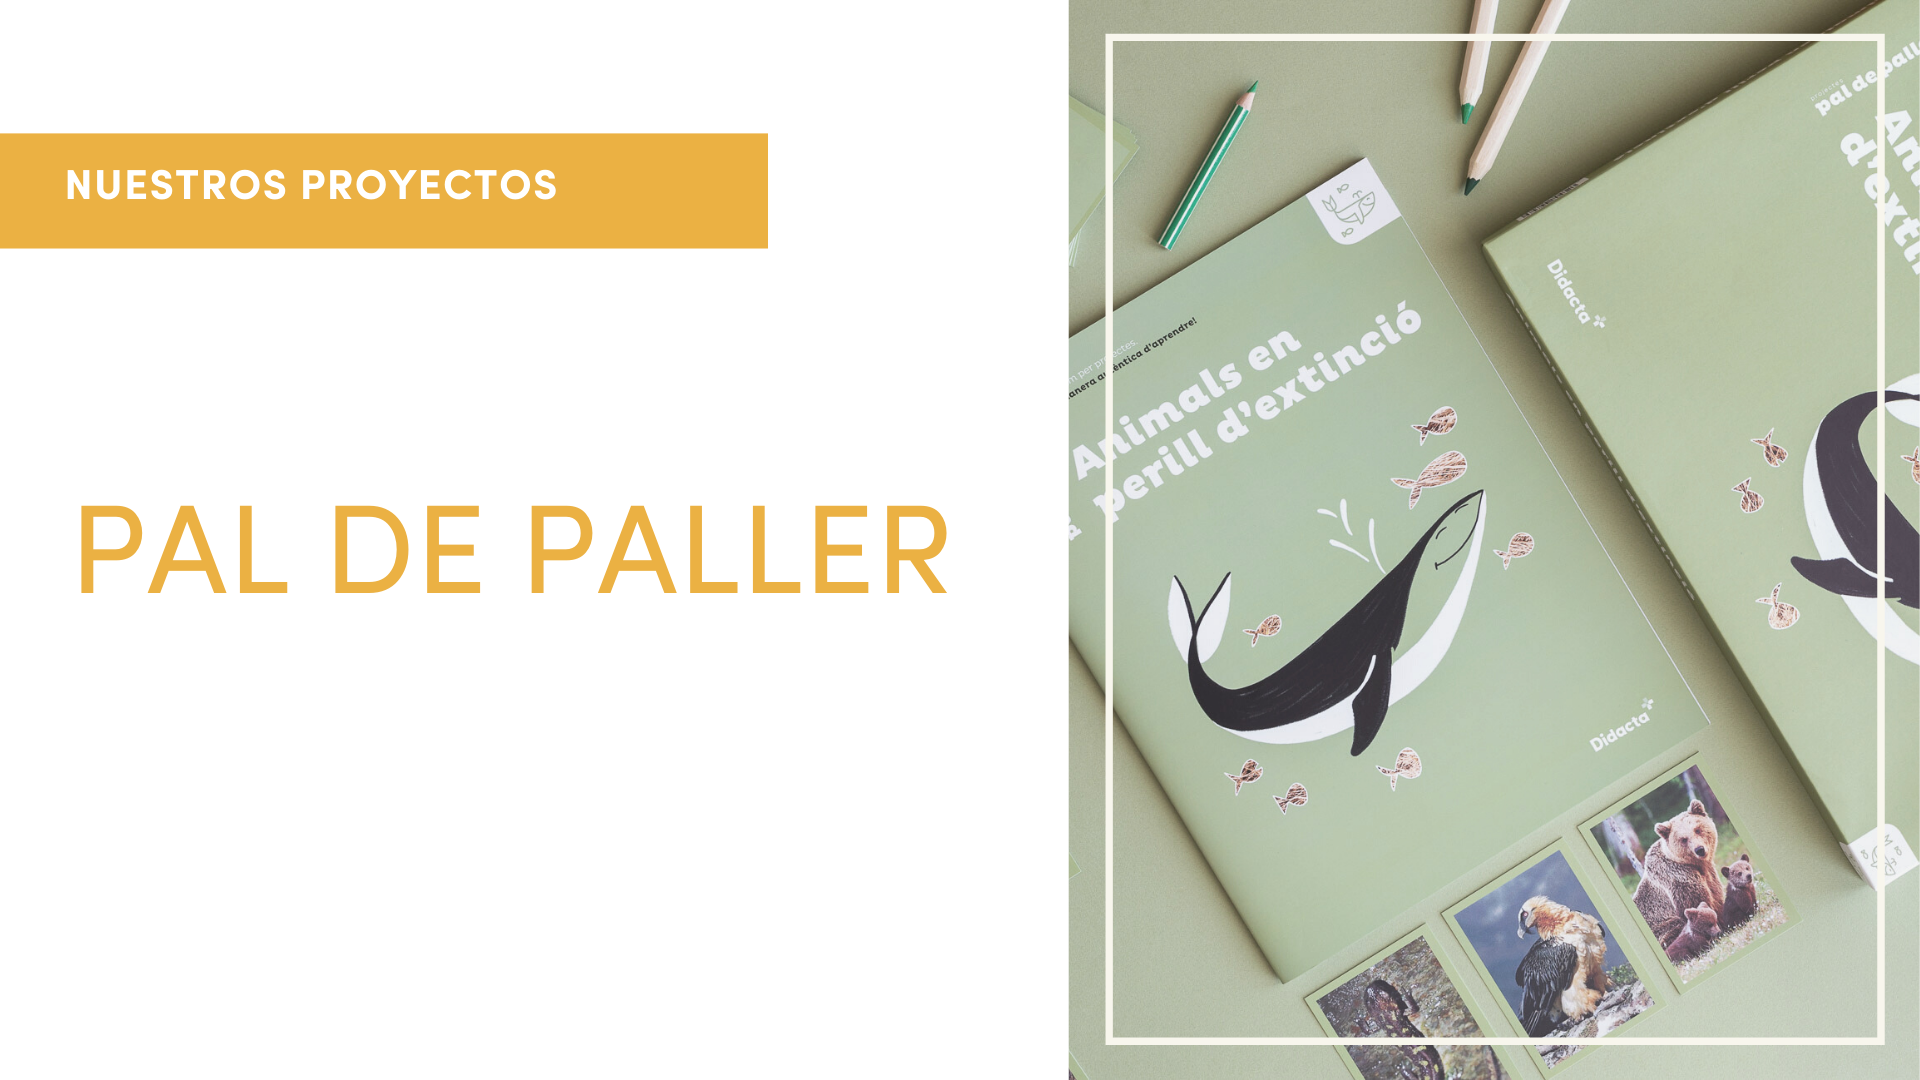 pal de paller post al blog ES